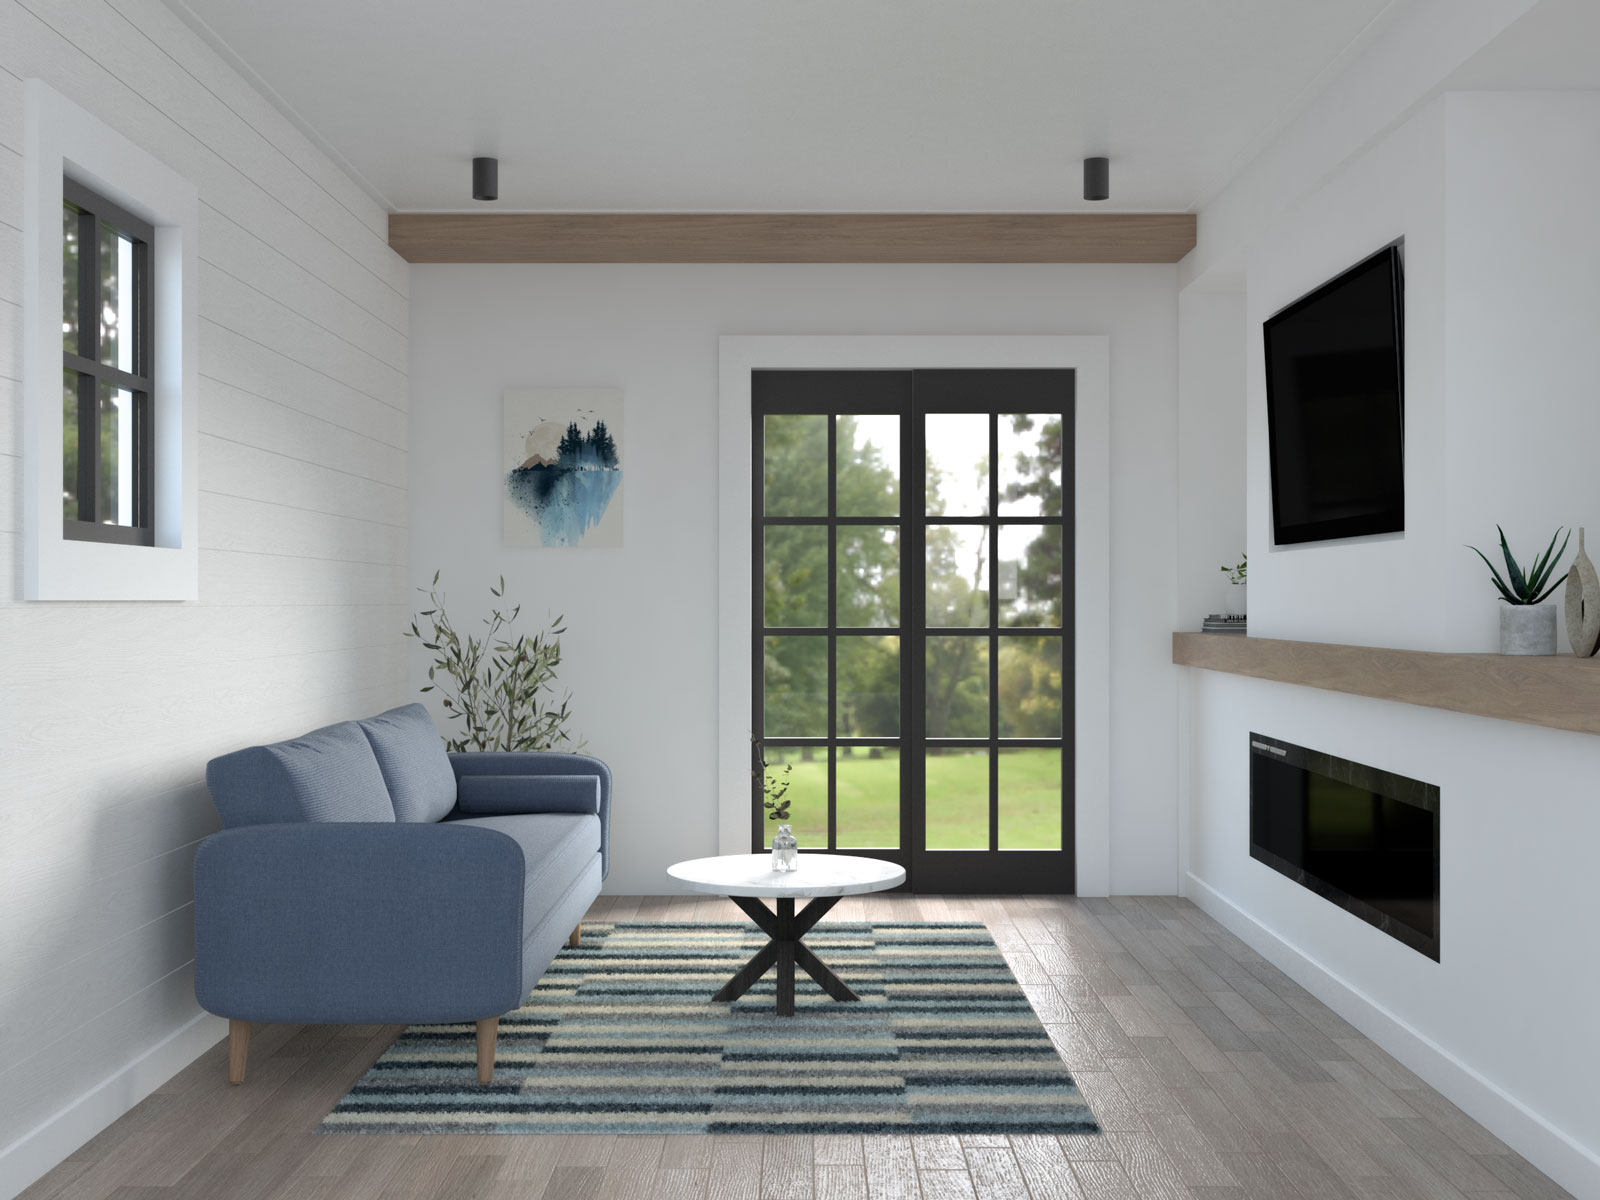 Seating ideas for small living room using single couch